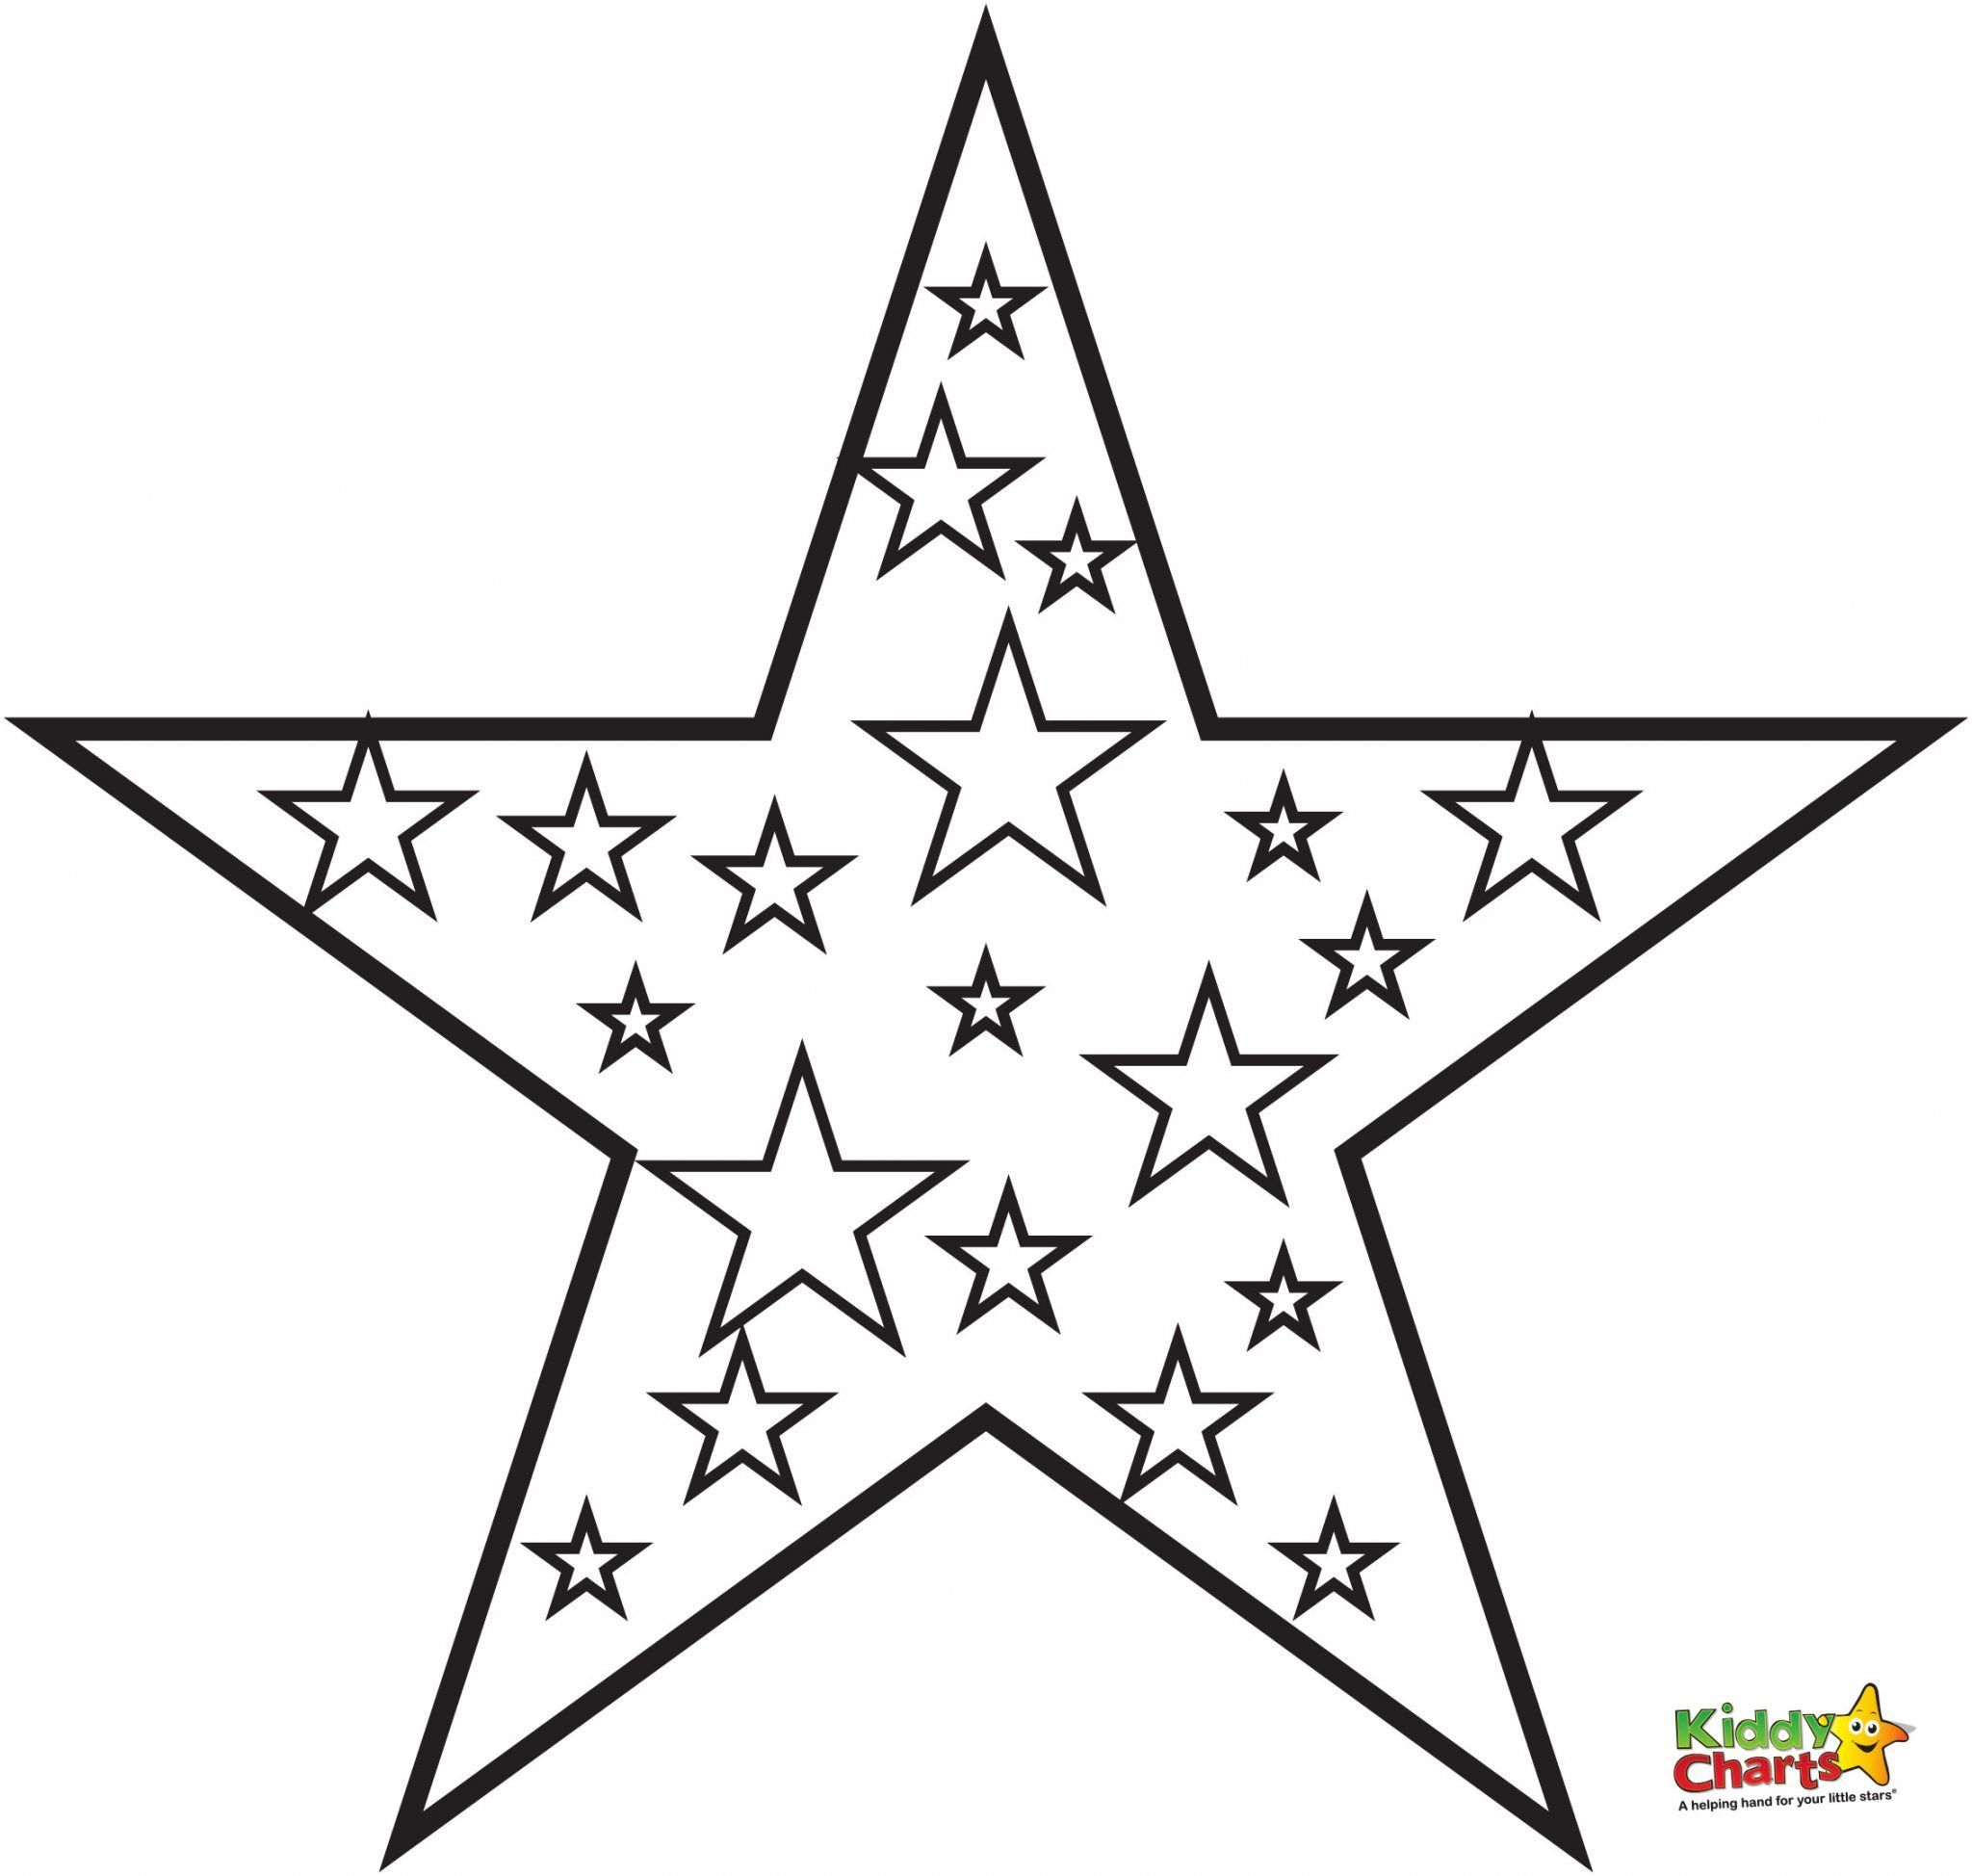 picture regarding Star Coloring Pages Printable identified as Star Coloring Internet pages coloring internet pages 4 me Star coloring